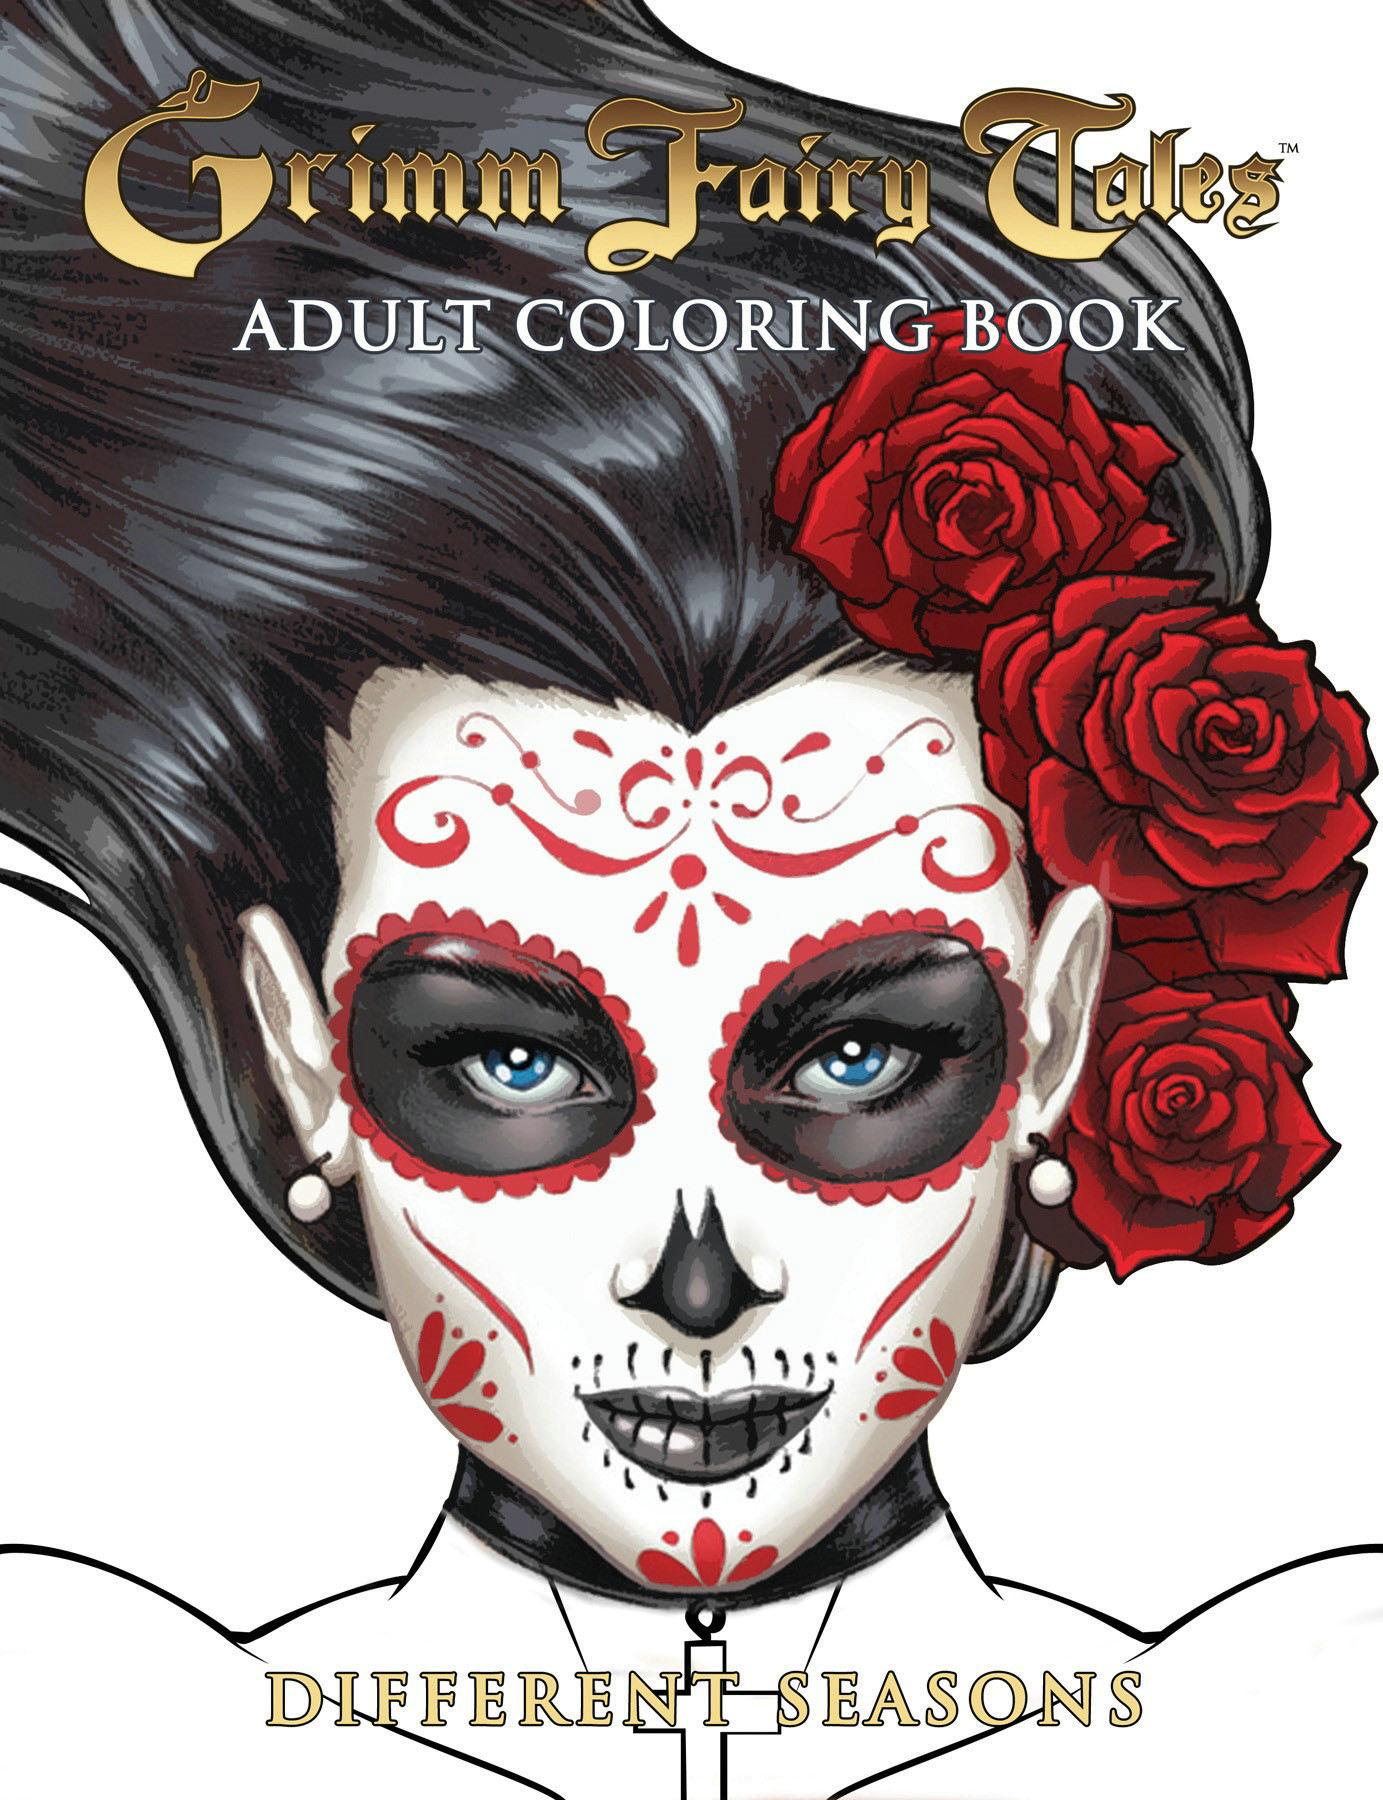 Grimm Fairy Tales Adult Coloring Book Different Seasons (Paperback) by Diamond Comic Distributors